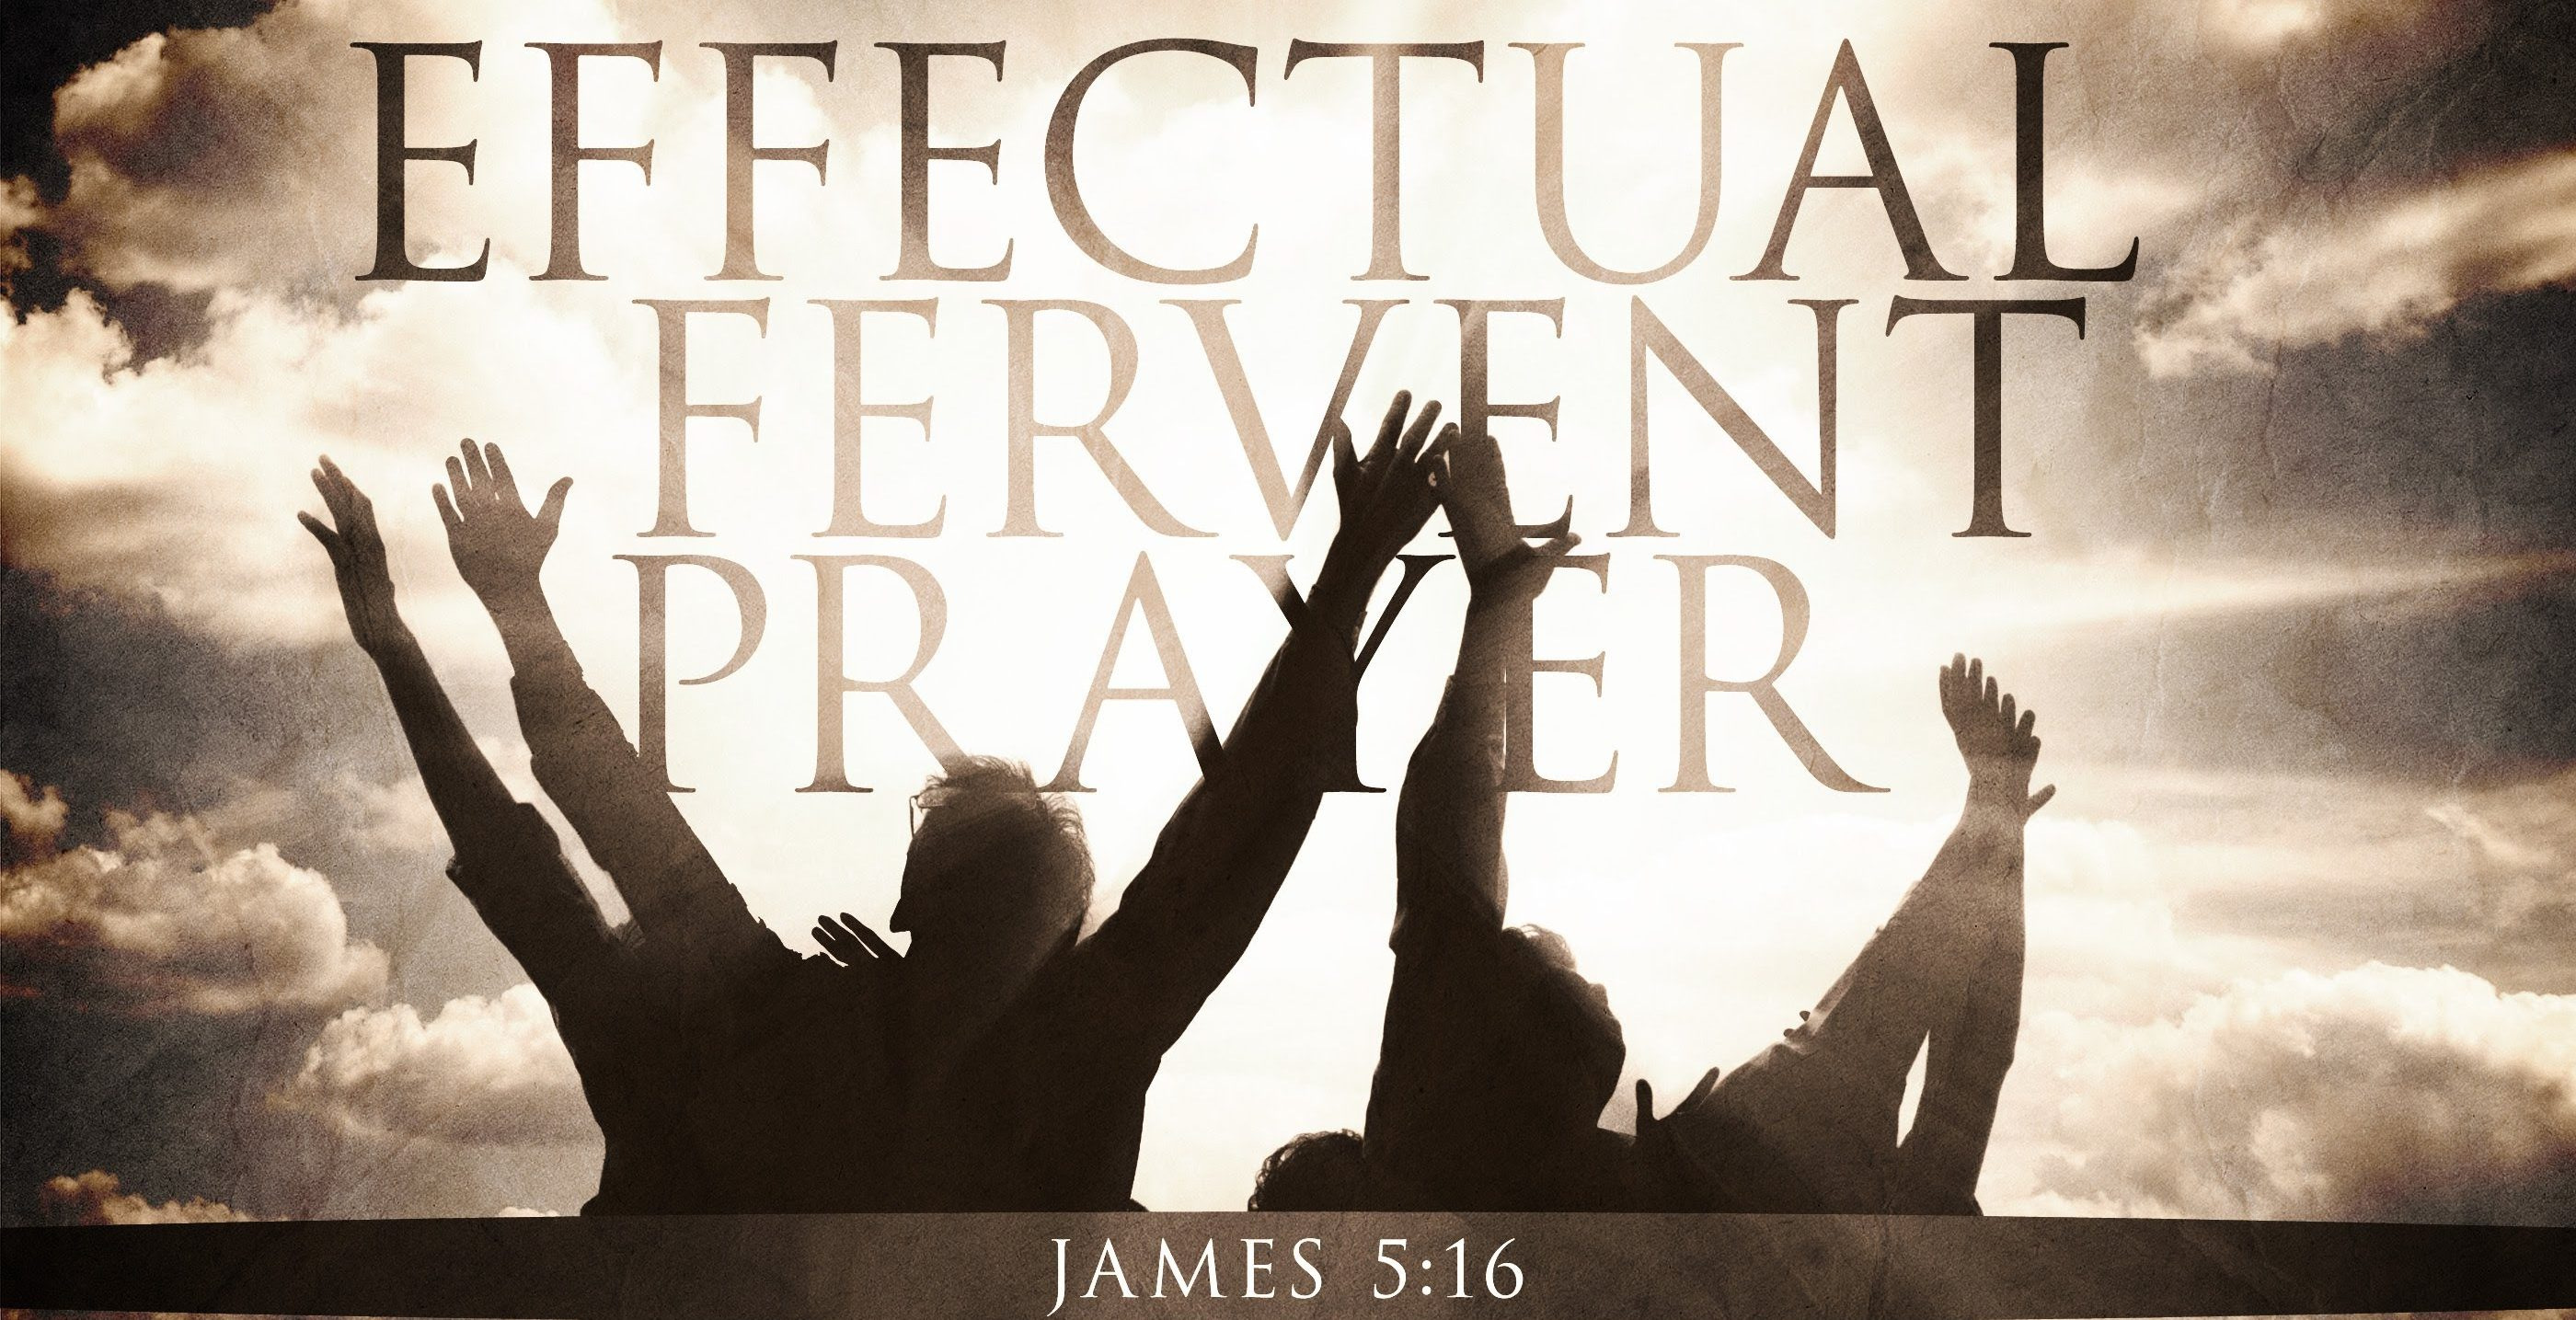 effectual fervent prayers